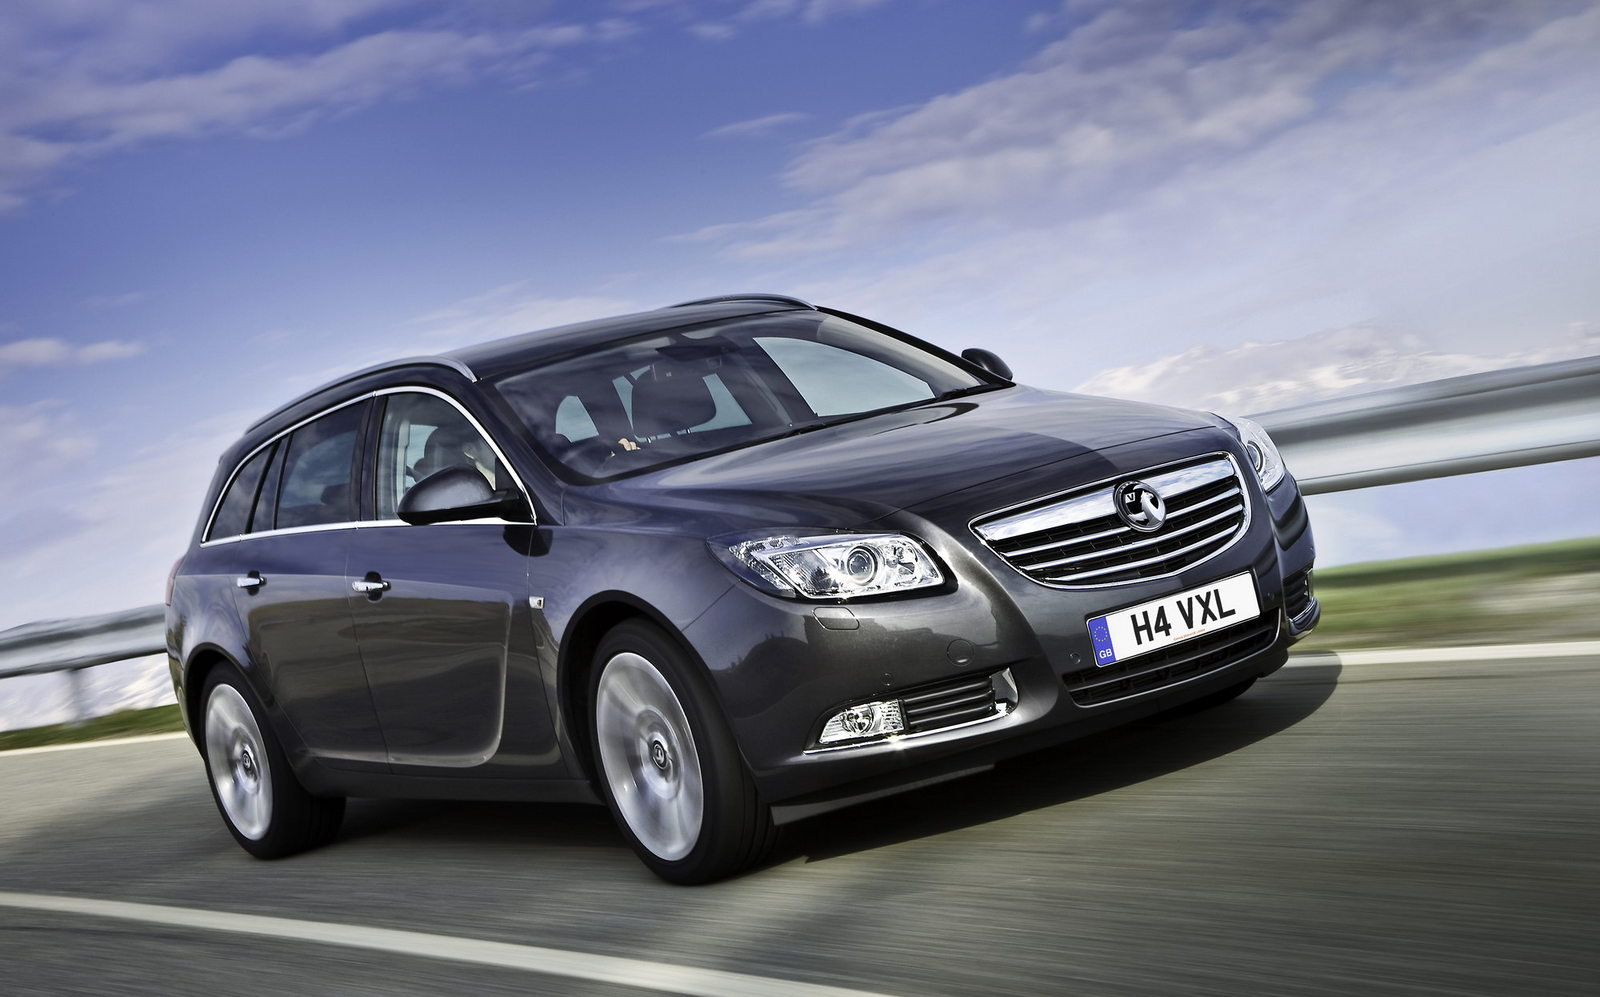 2010 vauxhall insignia sports tourer 4x4 review top speed. Black Bedroom Furniture Sets. Home Design Ideas